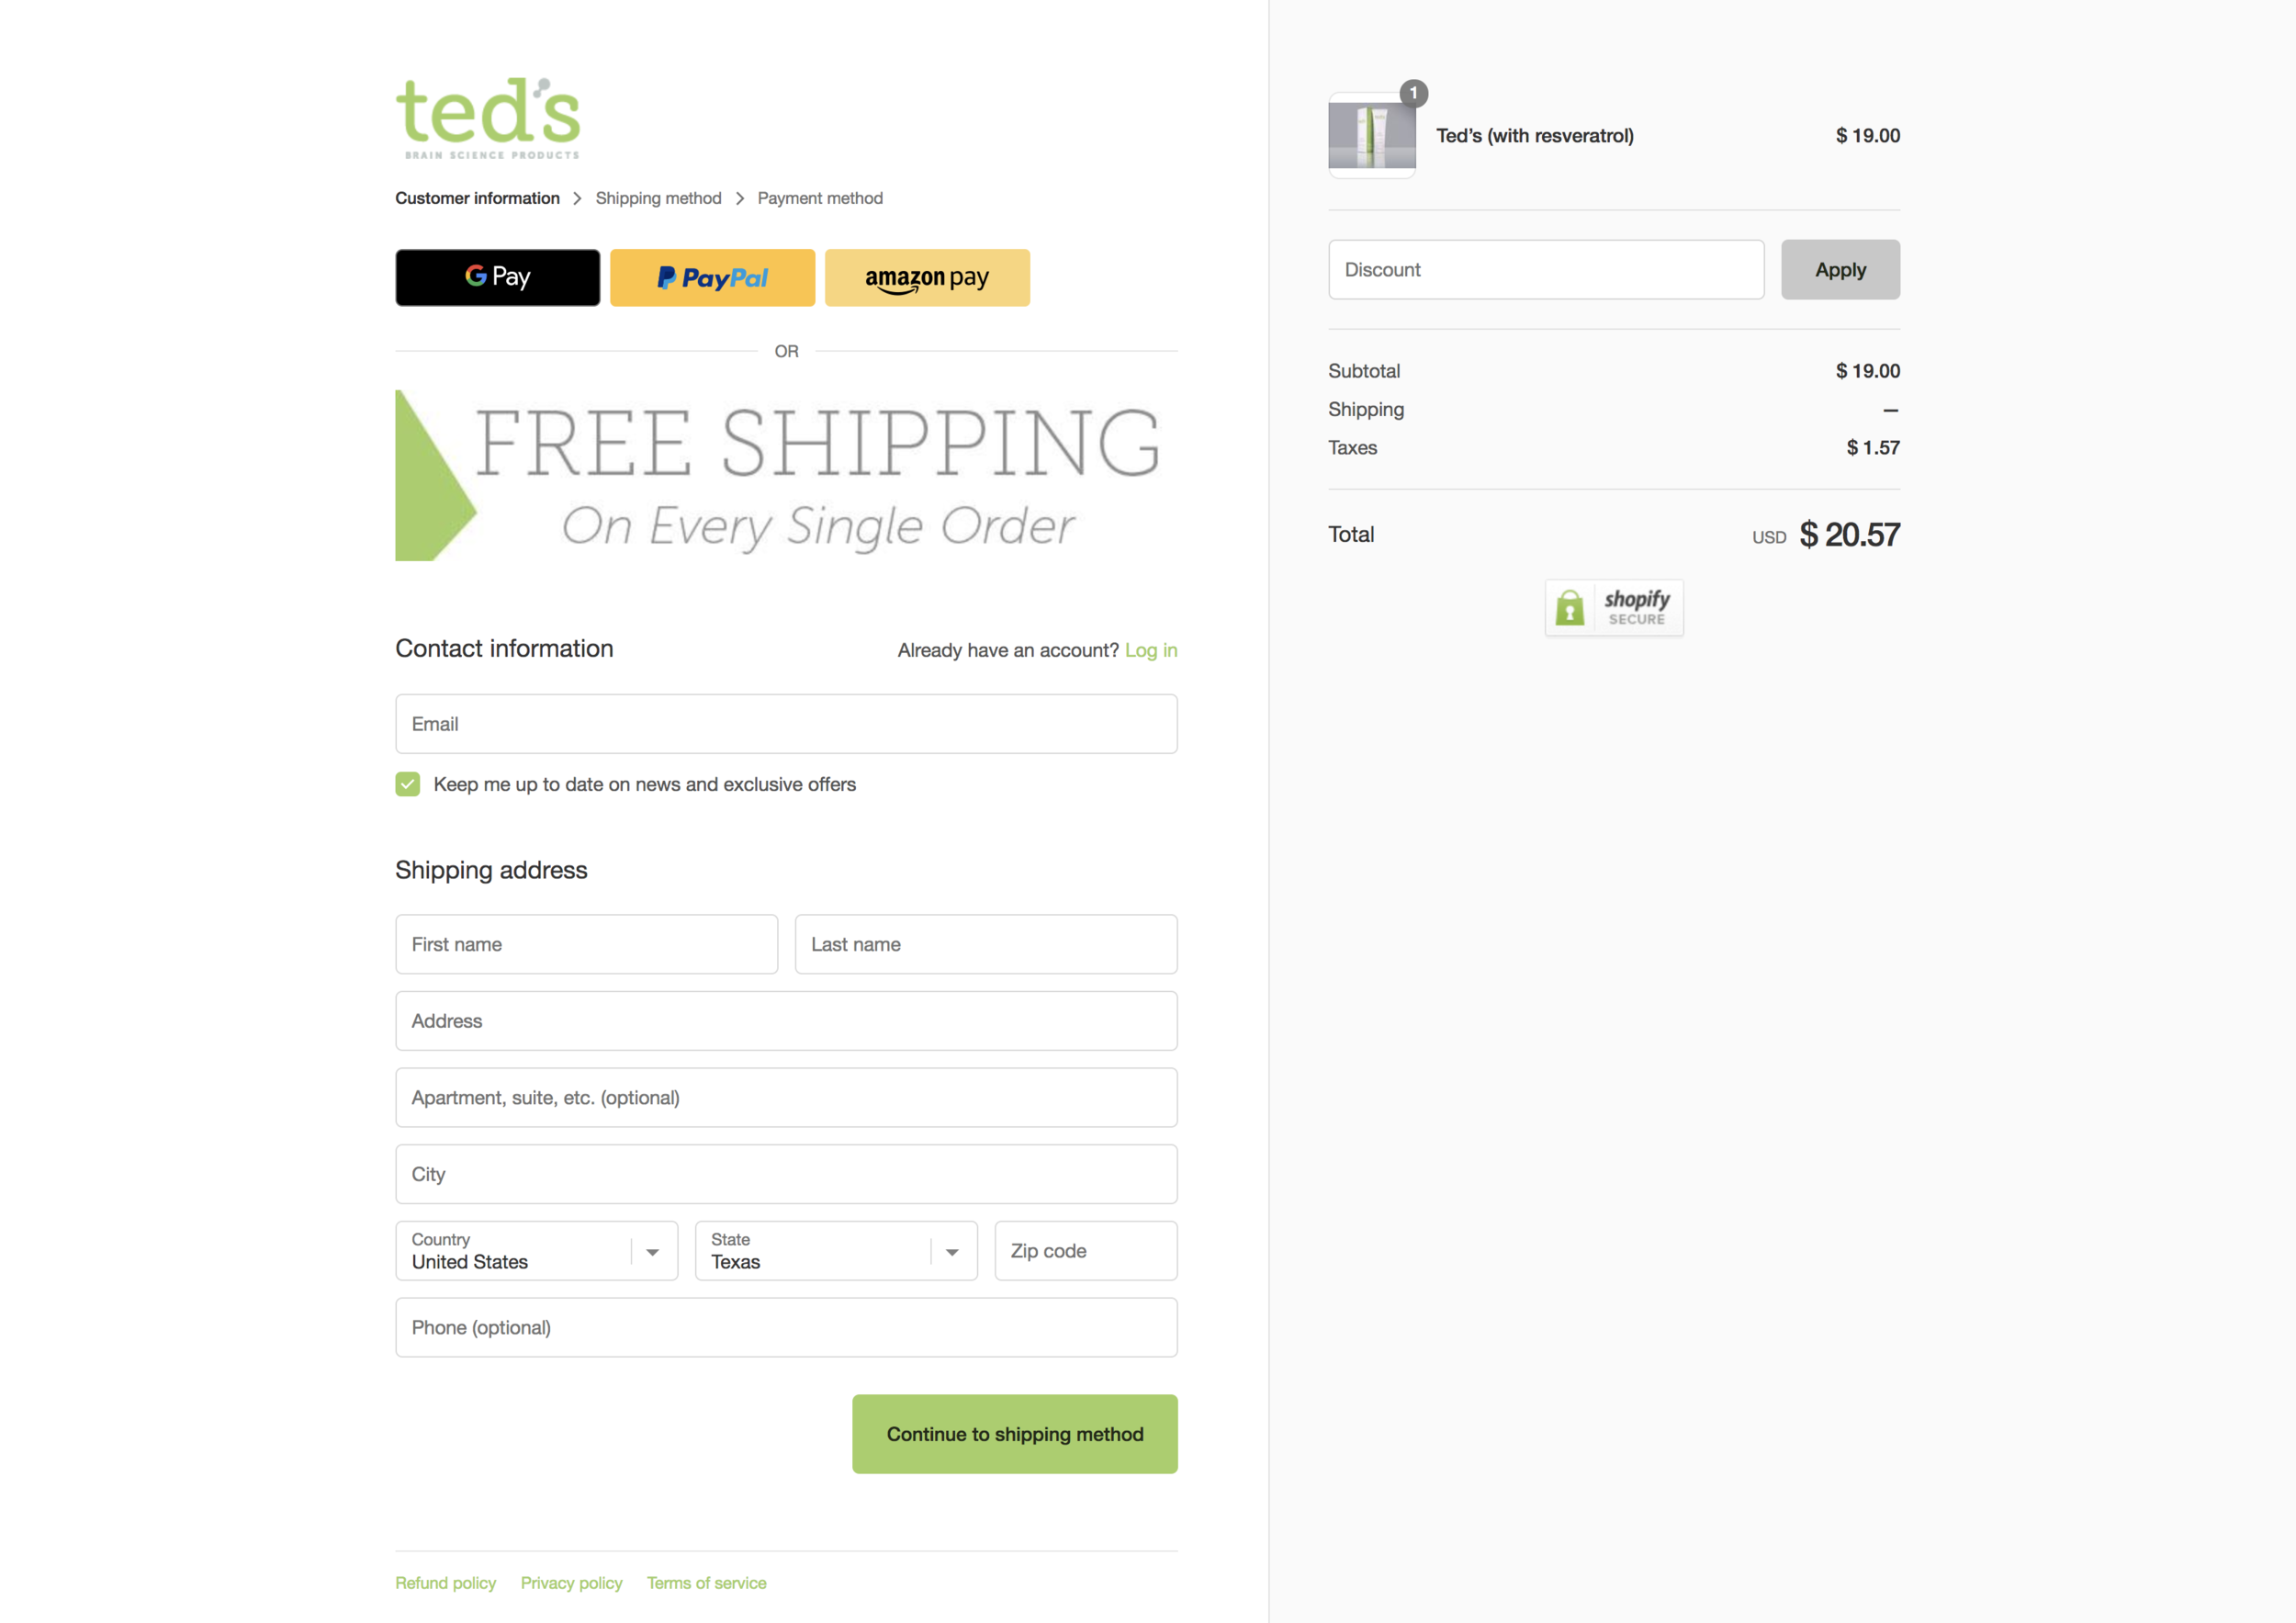 Treatment - This is the treatment version of the same 'Checkout' page. You'll notice the addition of the 'FREE SHIPPING' banner at the top of the shipping information form.Here are the results observed for the treatment page:Treatment: 1,319 Sessions, 233 Conversions (15.4%)